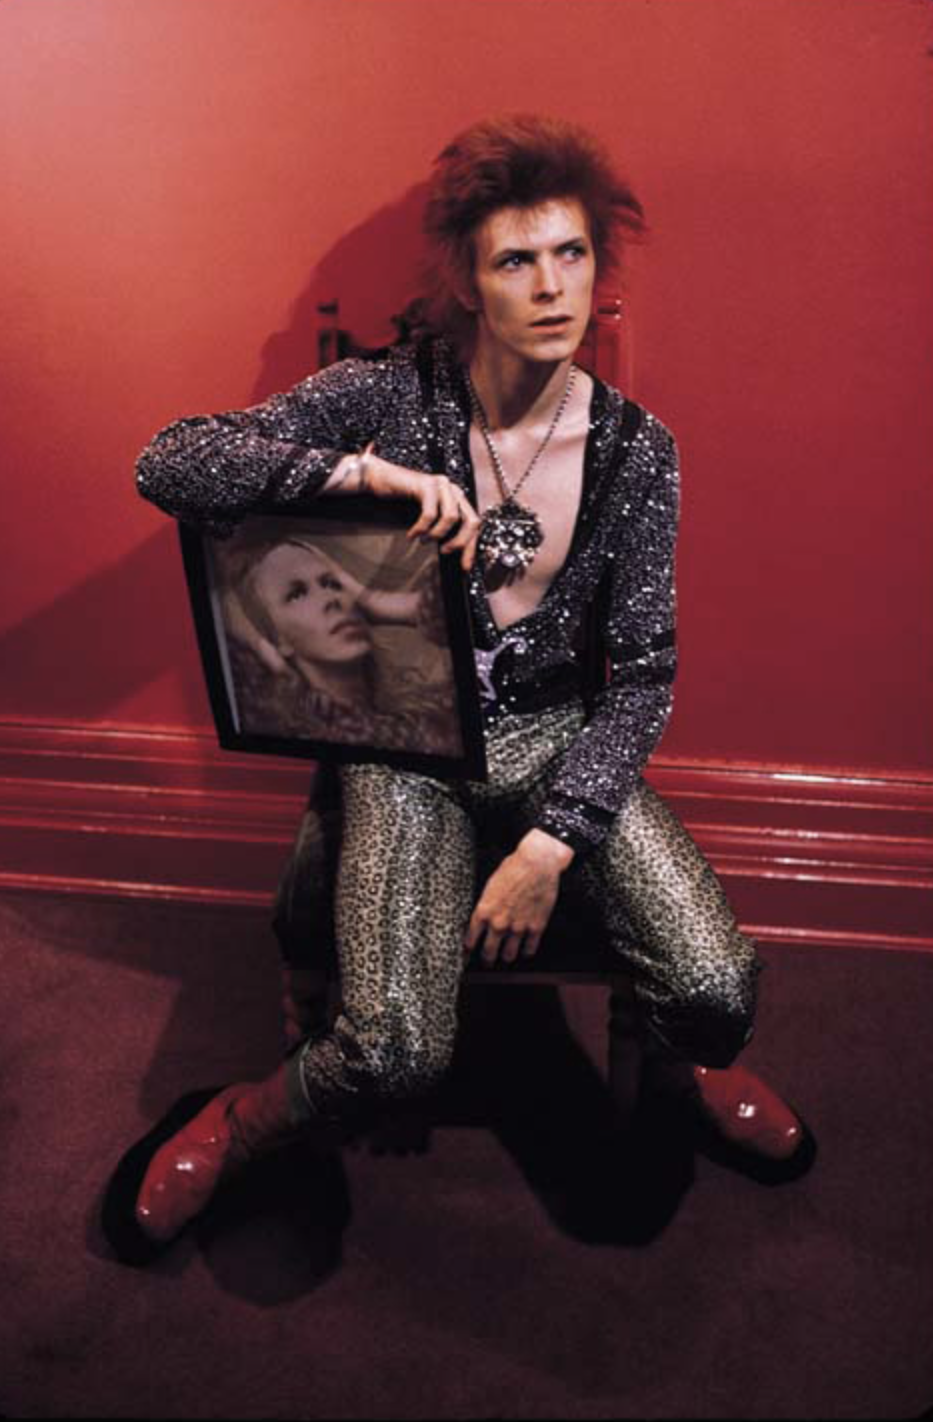 Mick Rock BOWIE Hunky Dory